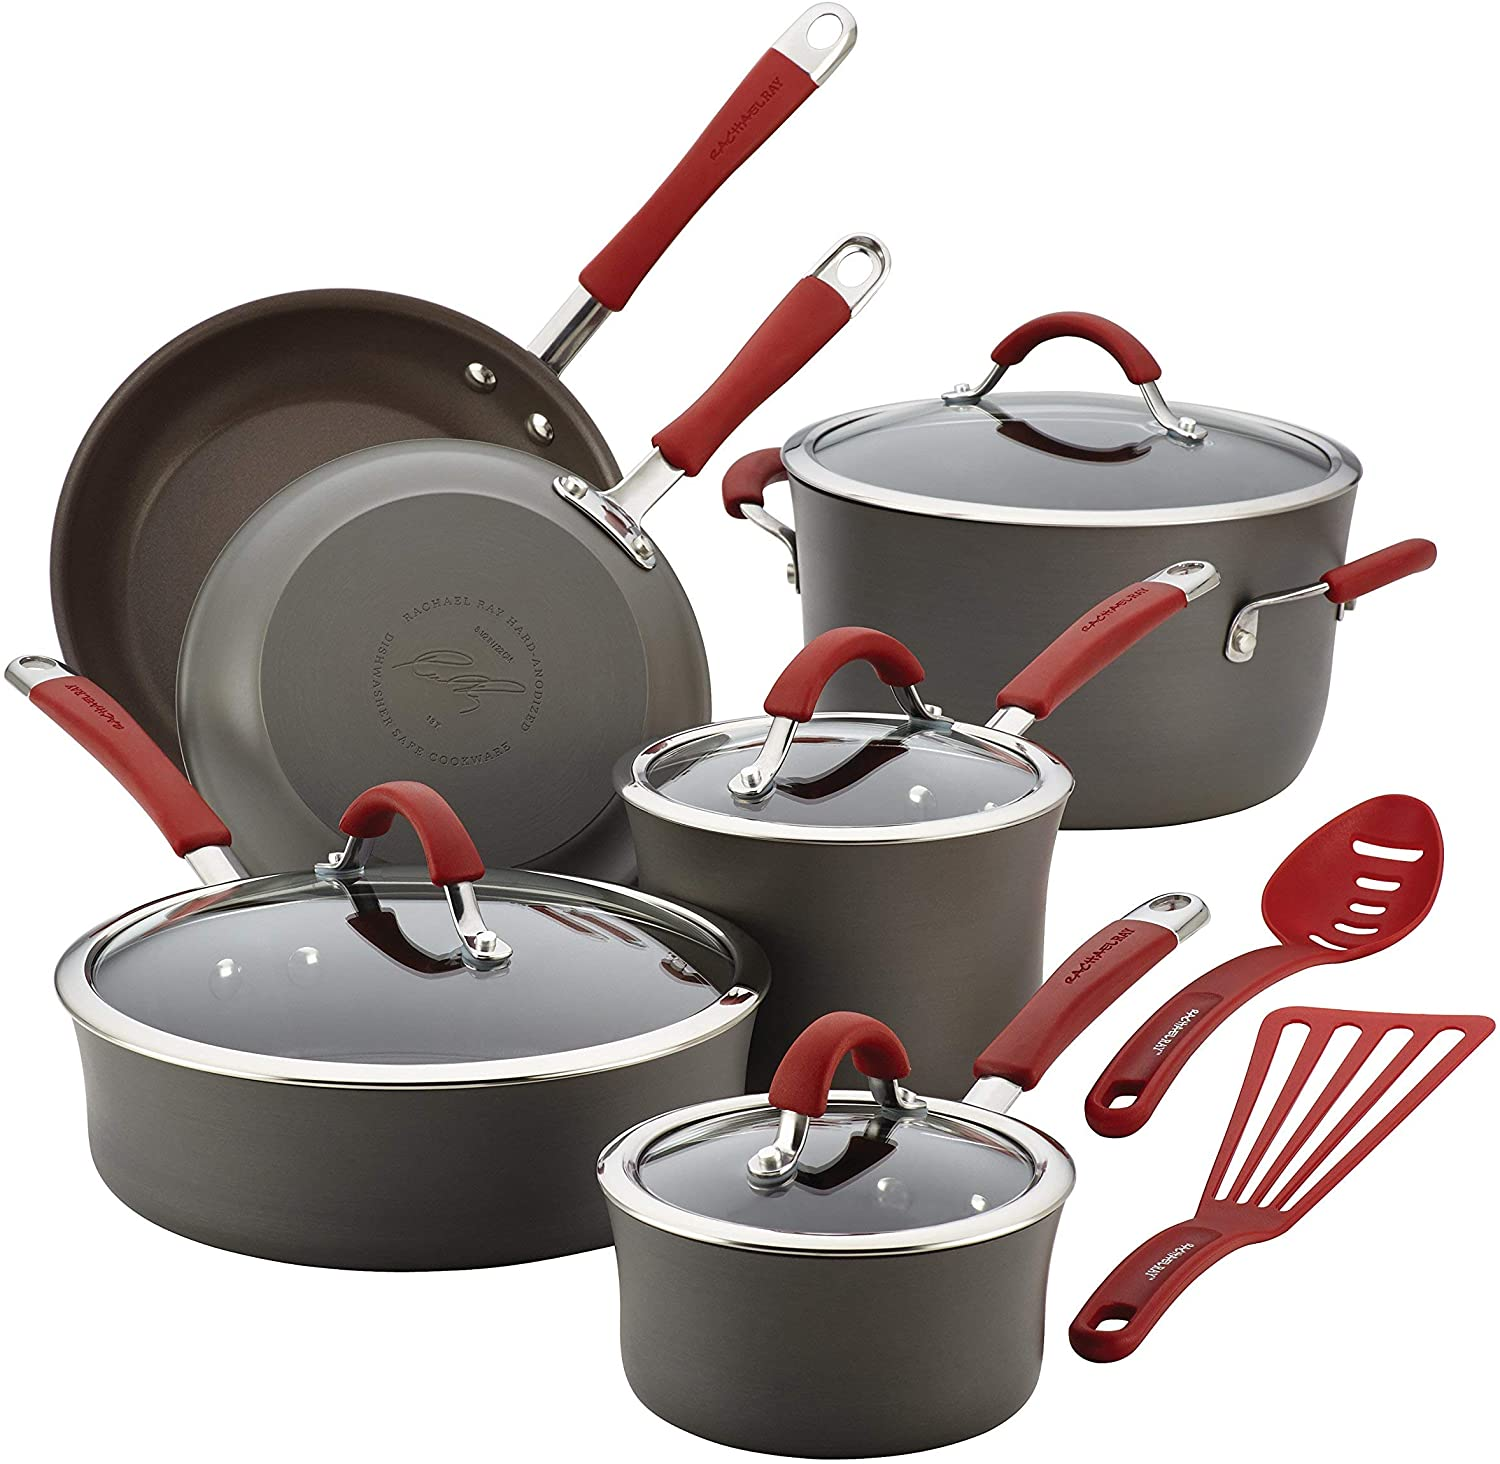 Rachael Ray Cucina Hard-Anodized Aluminum Nonstick Cookware Set, 12-Piece, Gray, Cranberry Red Handles (Renewed)